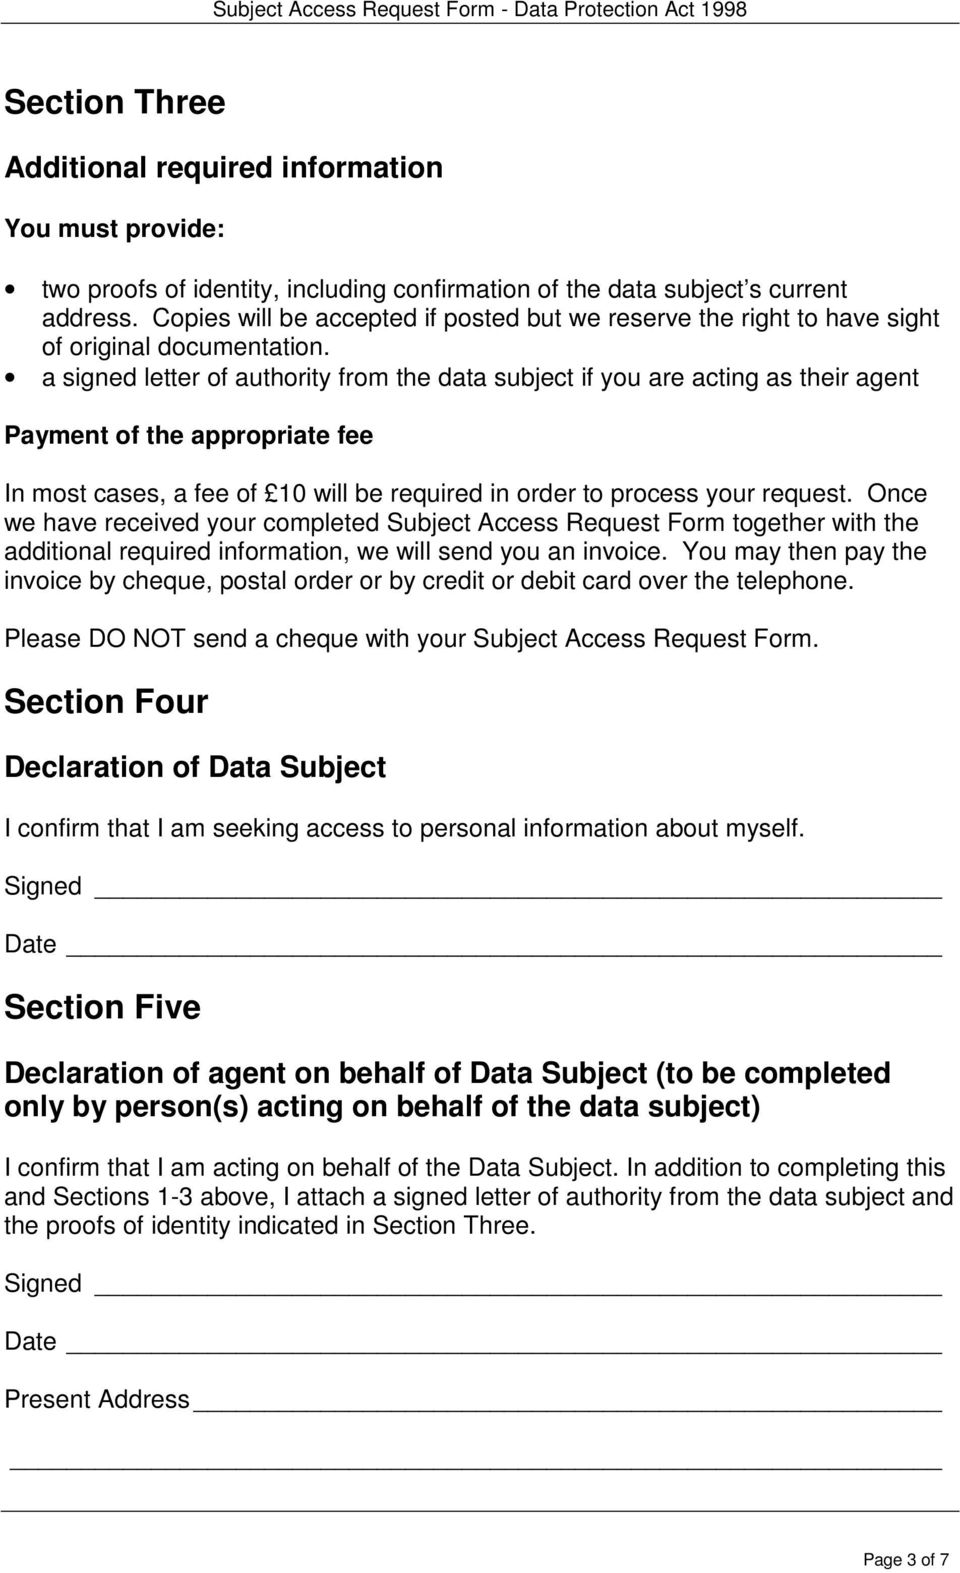 Subject access request form pdf a signed letter of authority from the data subject if you are acting as their agent altavistaventures Gallery